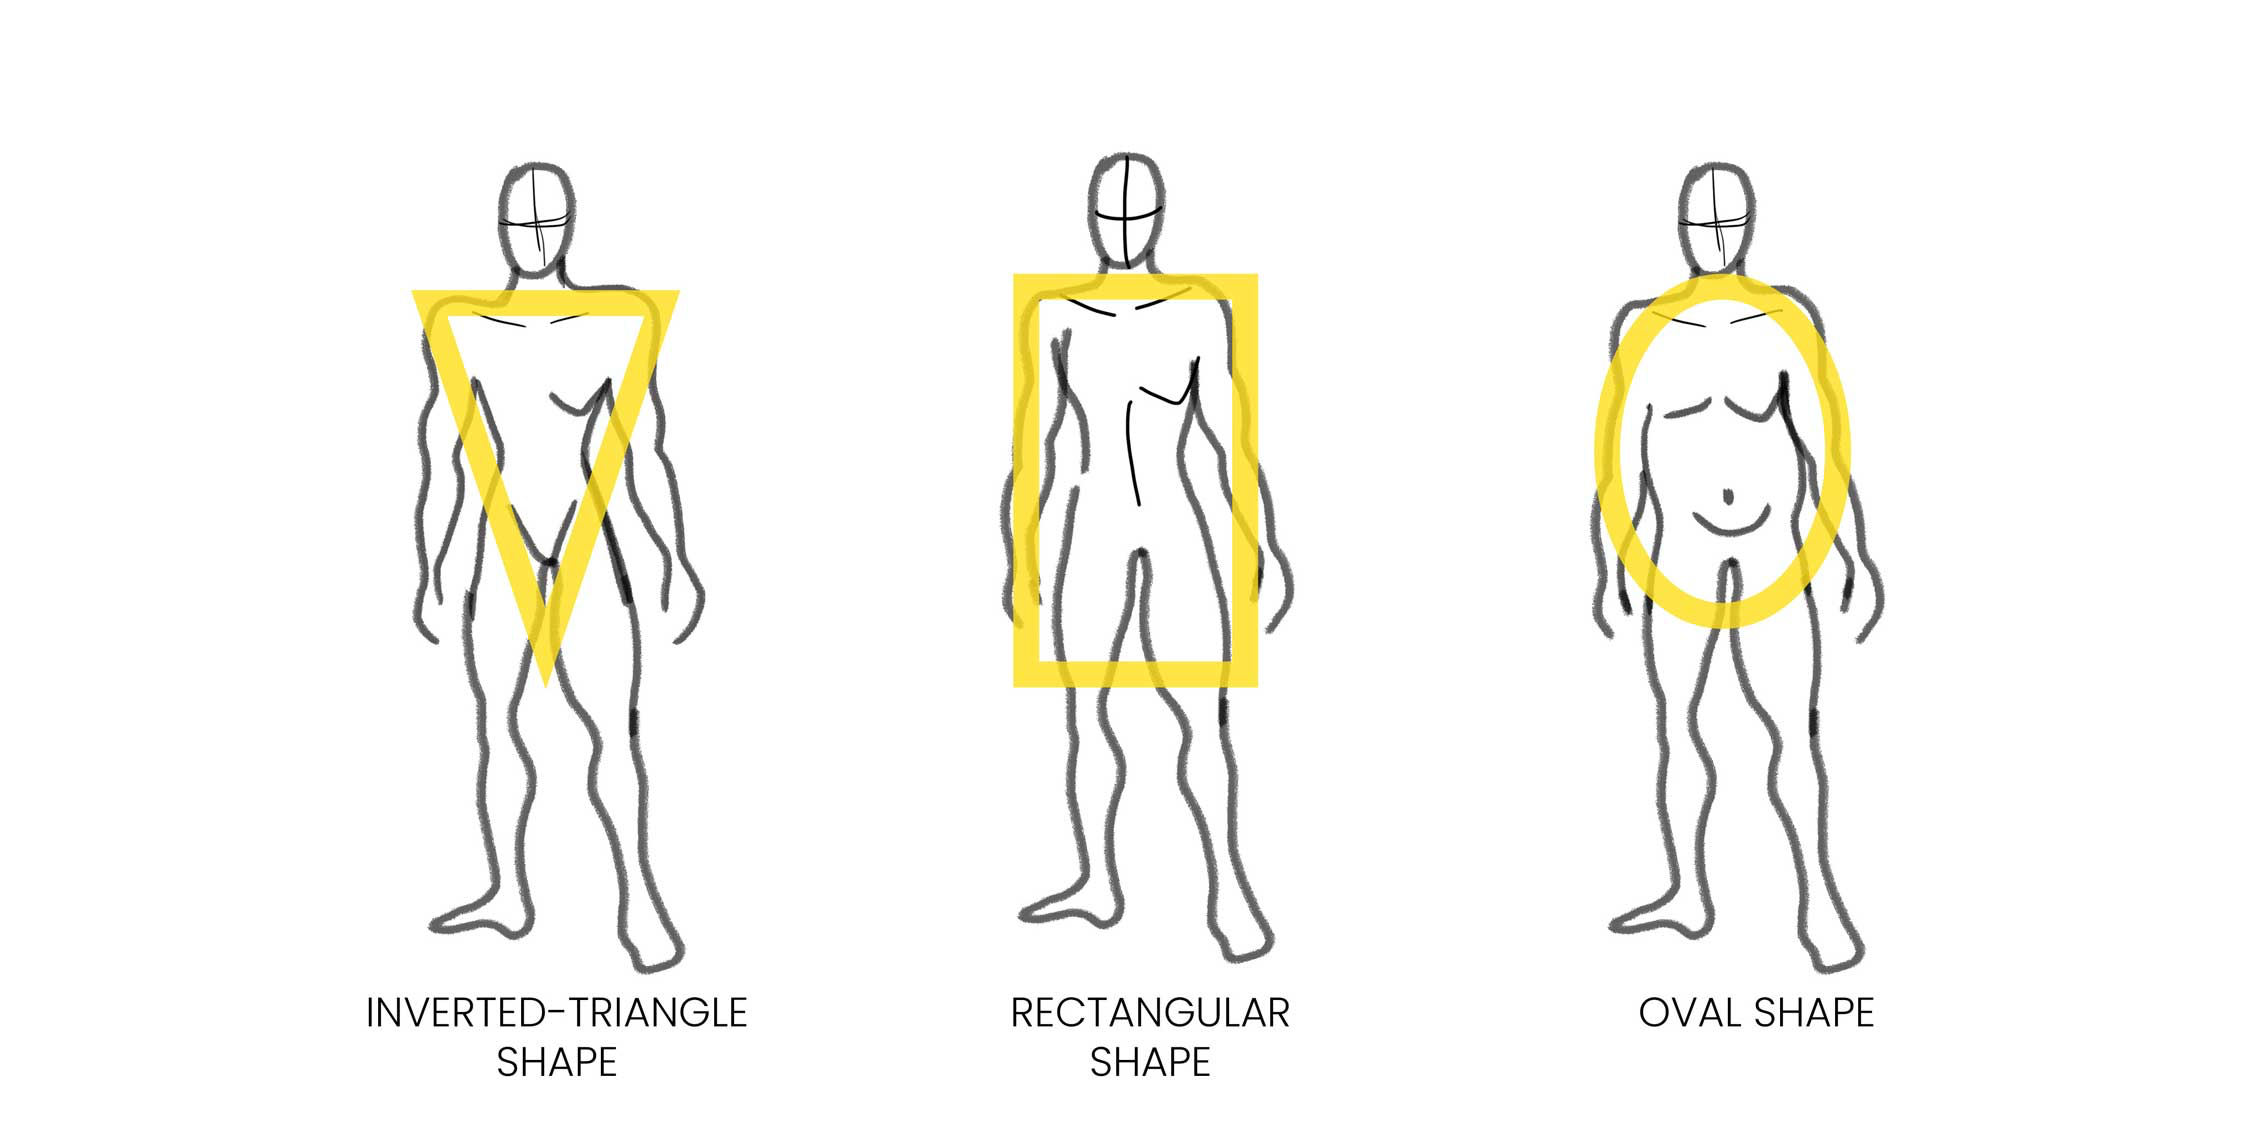 Men's body shapes (inverted-triangle, rectangular, and oval)